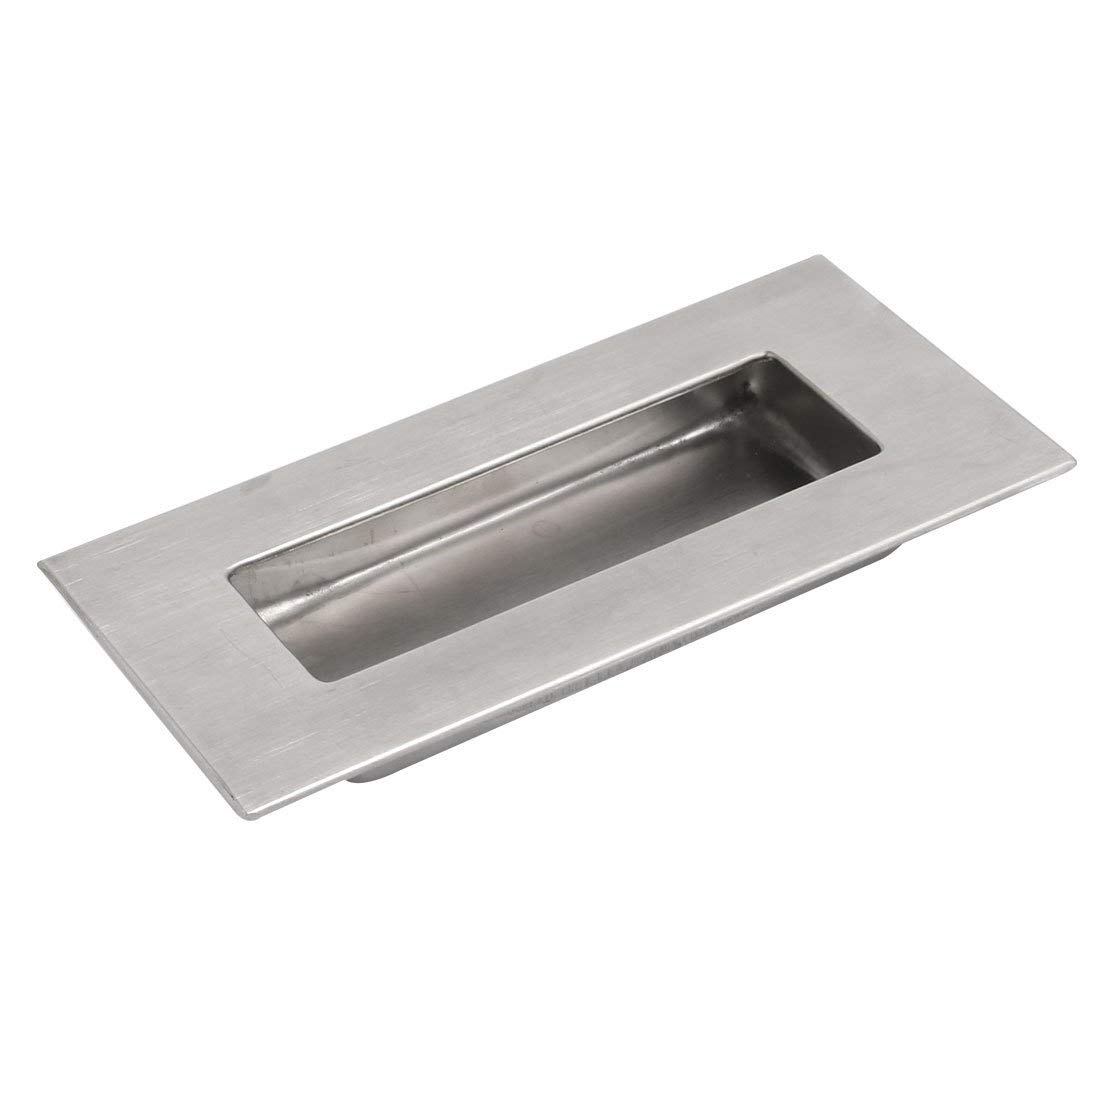 uxcell 120mmx60mm 304 Stainless Steel Recessed Flush Pull Door Handle Silver Tone